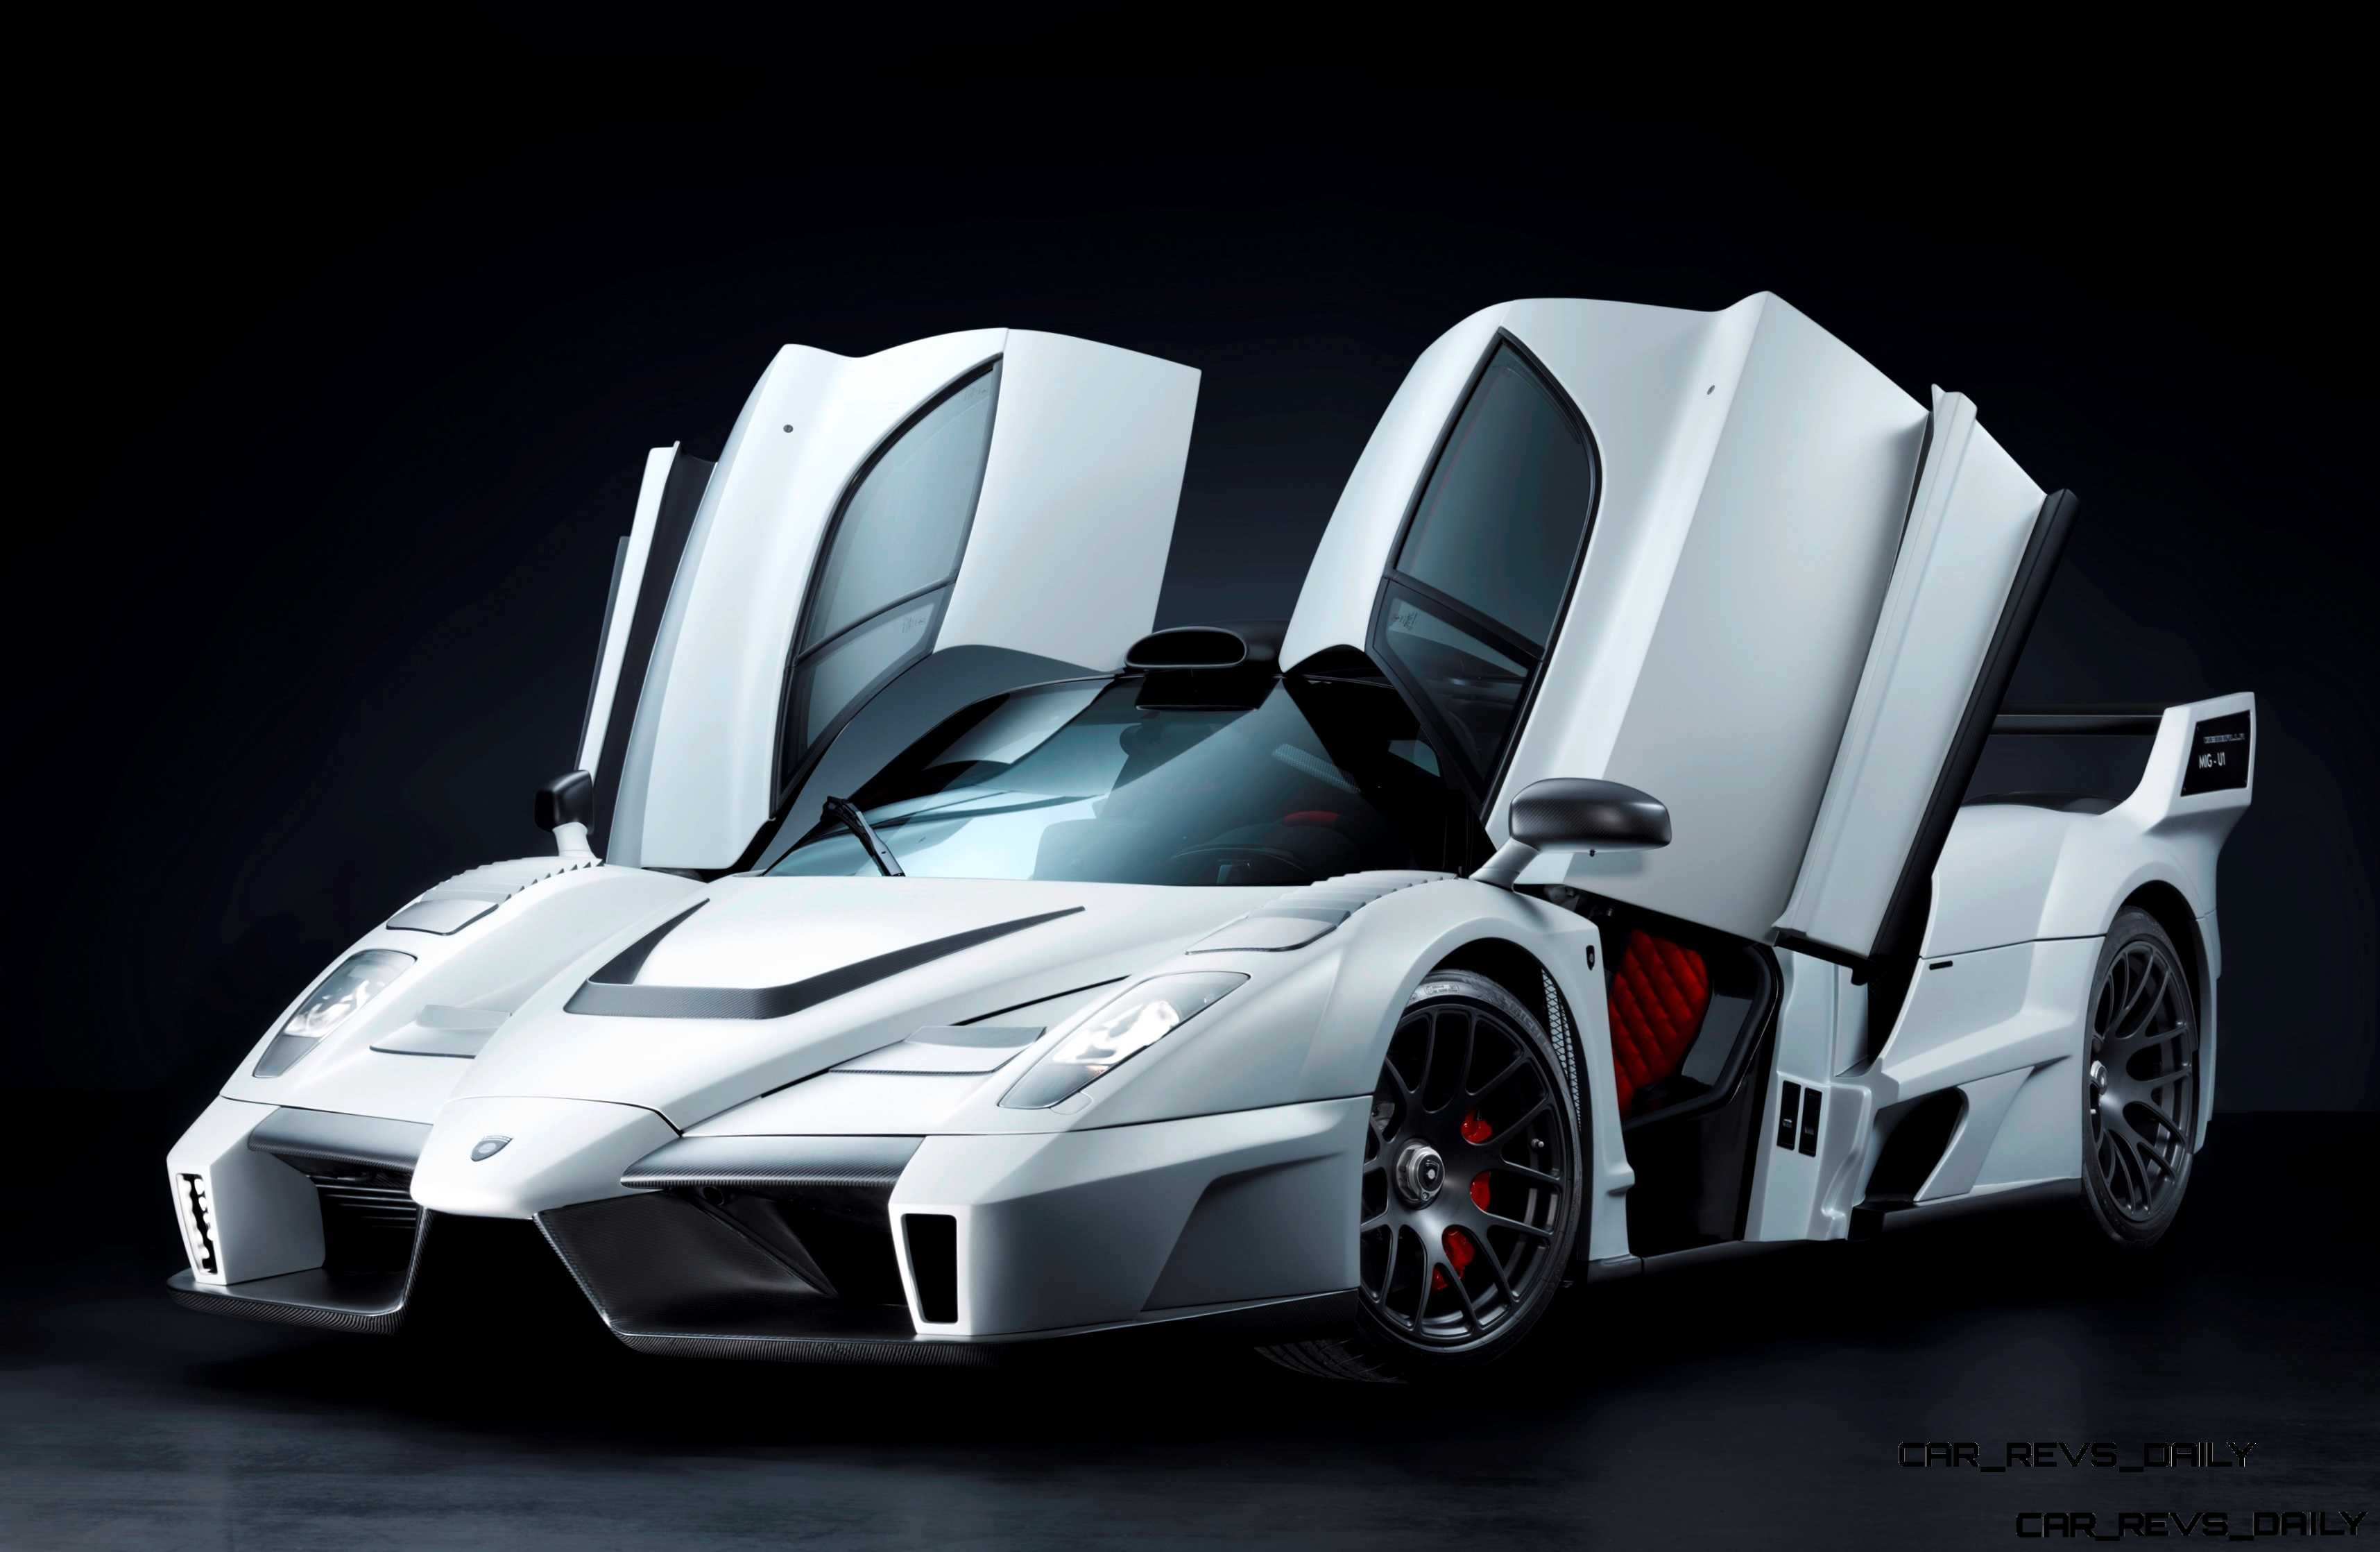 2010 GEMBALLA MIG-U1 Is Easily Most-Outrageous Enzo Ferrari Custom EVER!